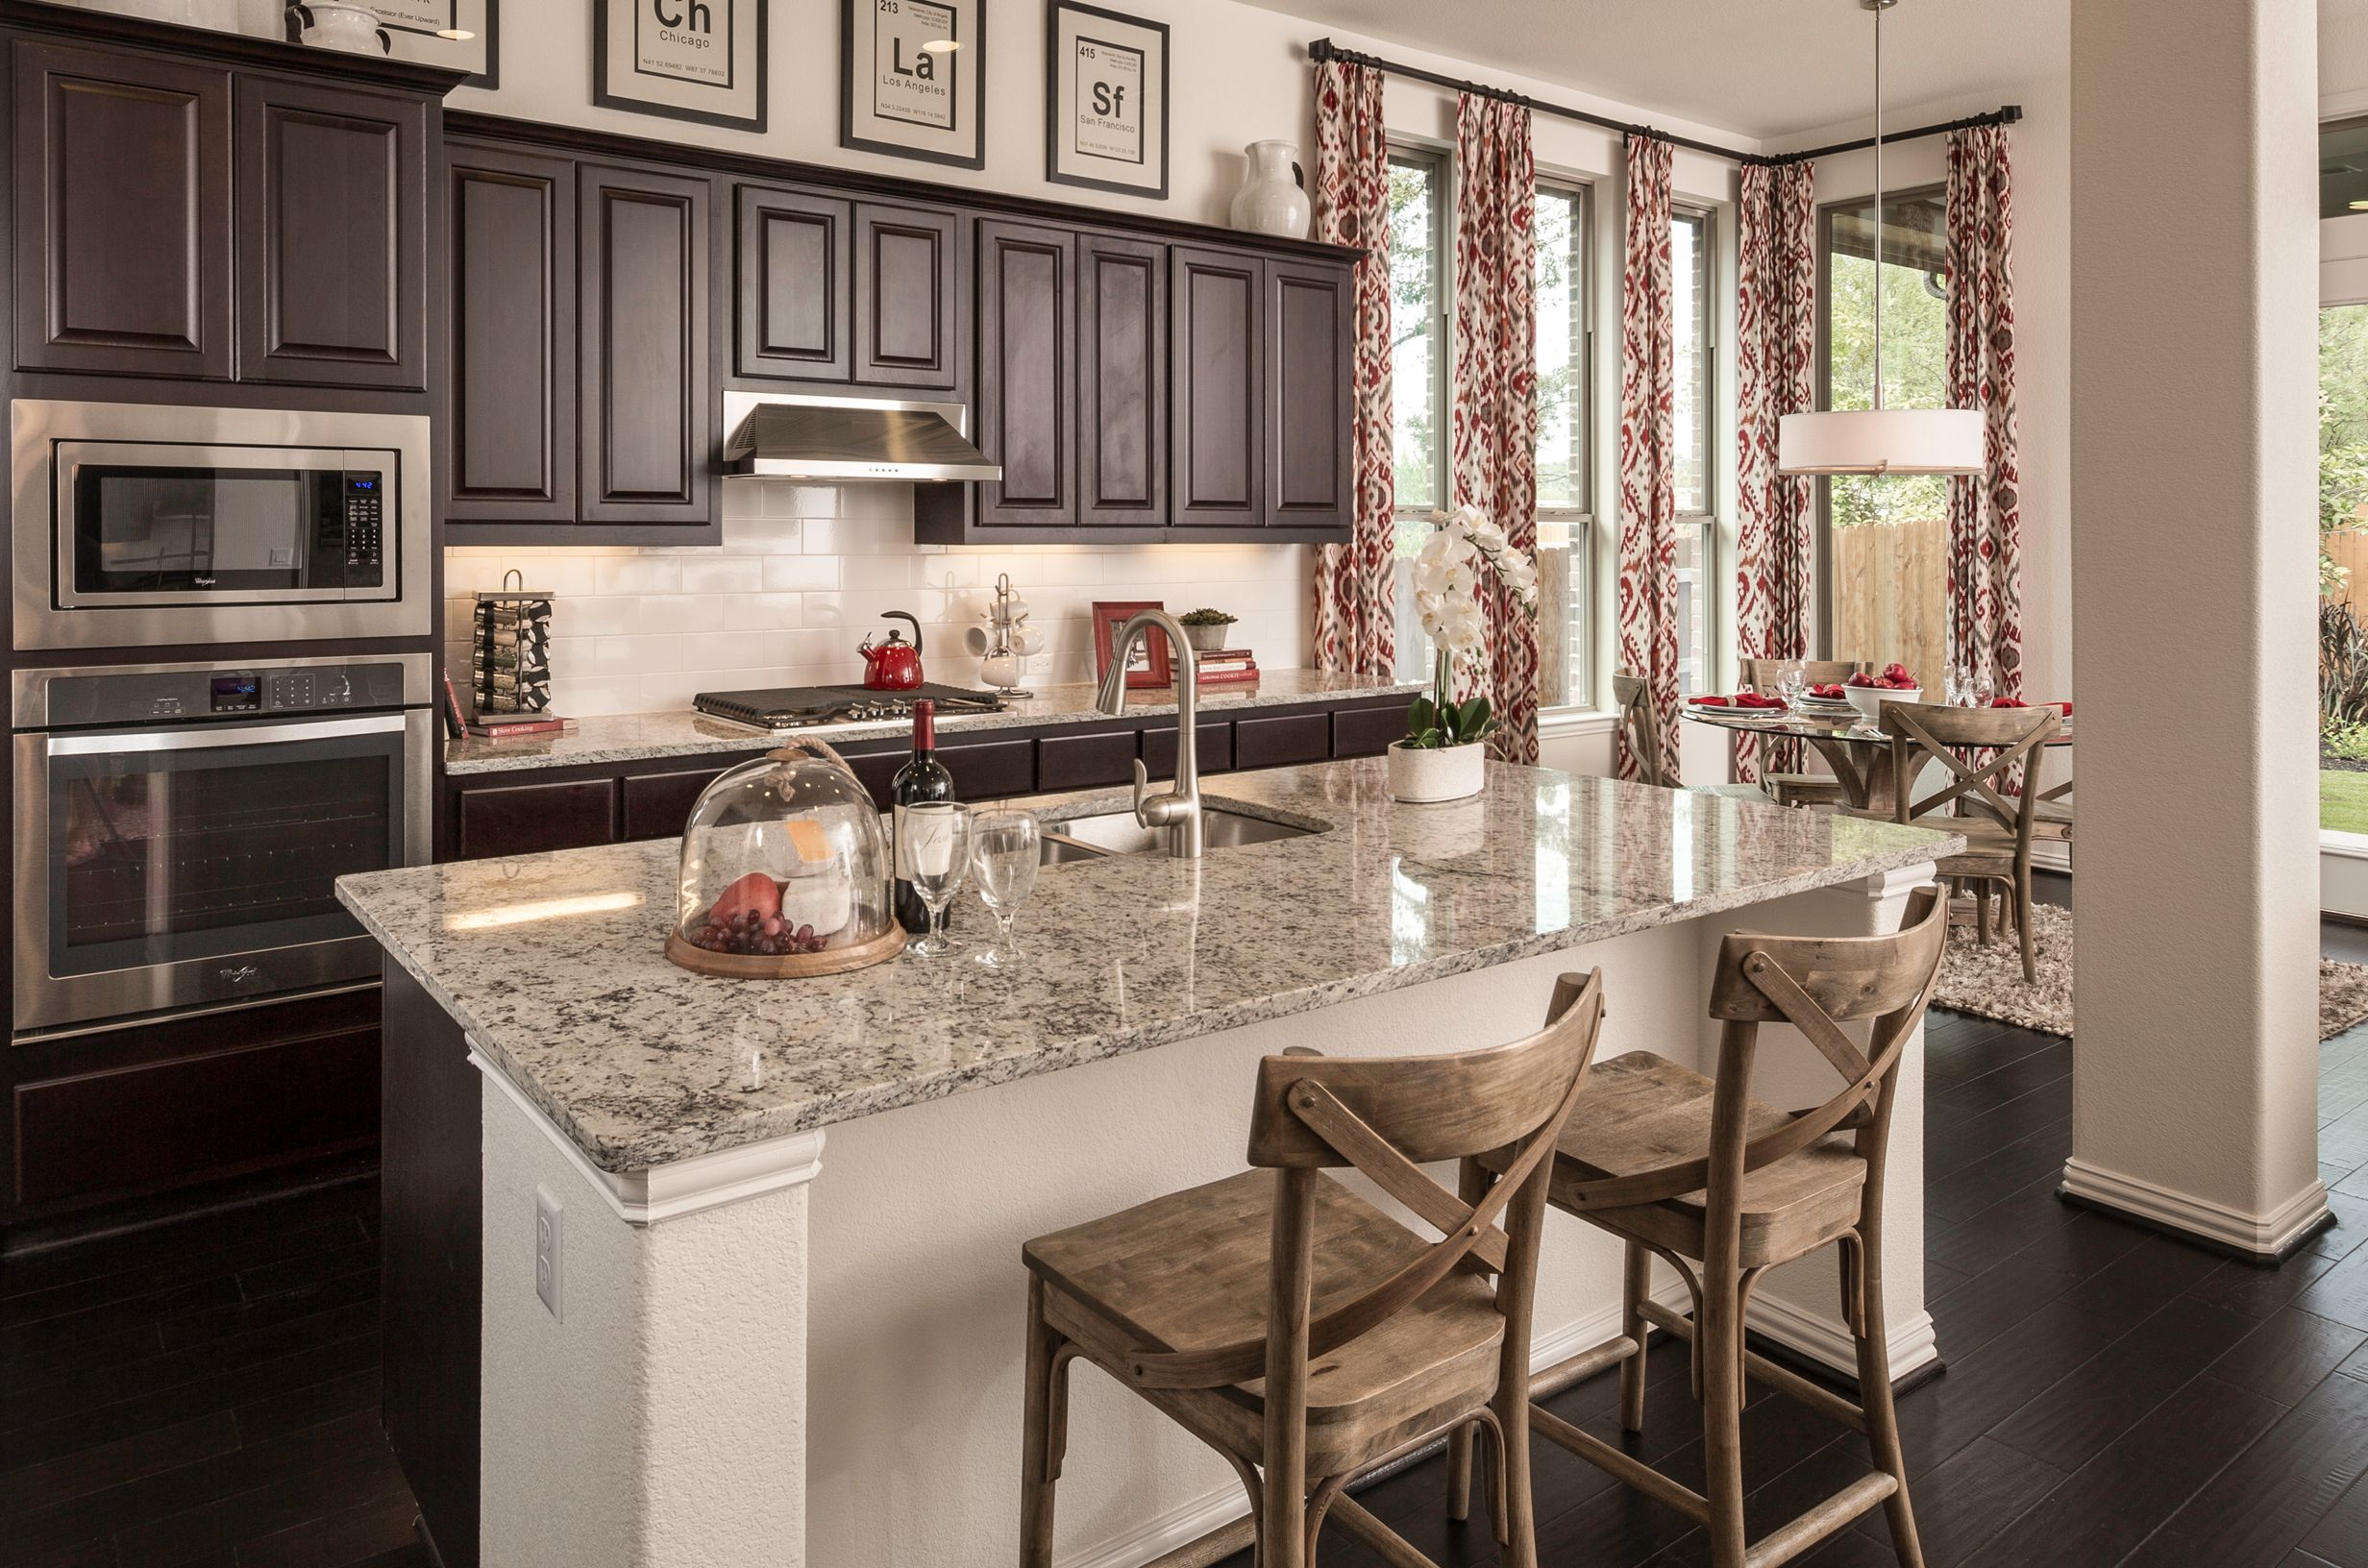 New Homes Available In The Parkside At Mayfield Ranch Community Of  Georgetown, TX In The Austin TX Area! Discover Our Floor Plans For Parkside  At Mayfield ...